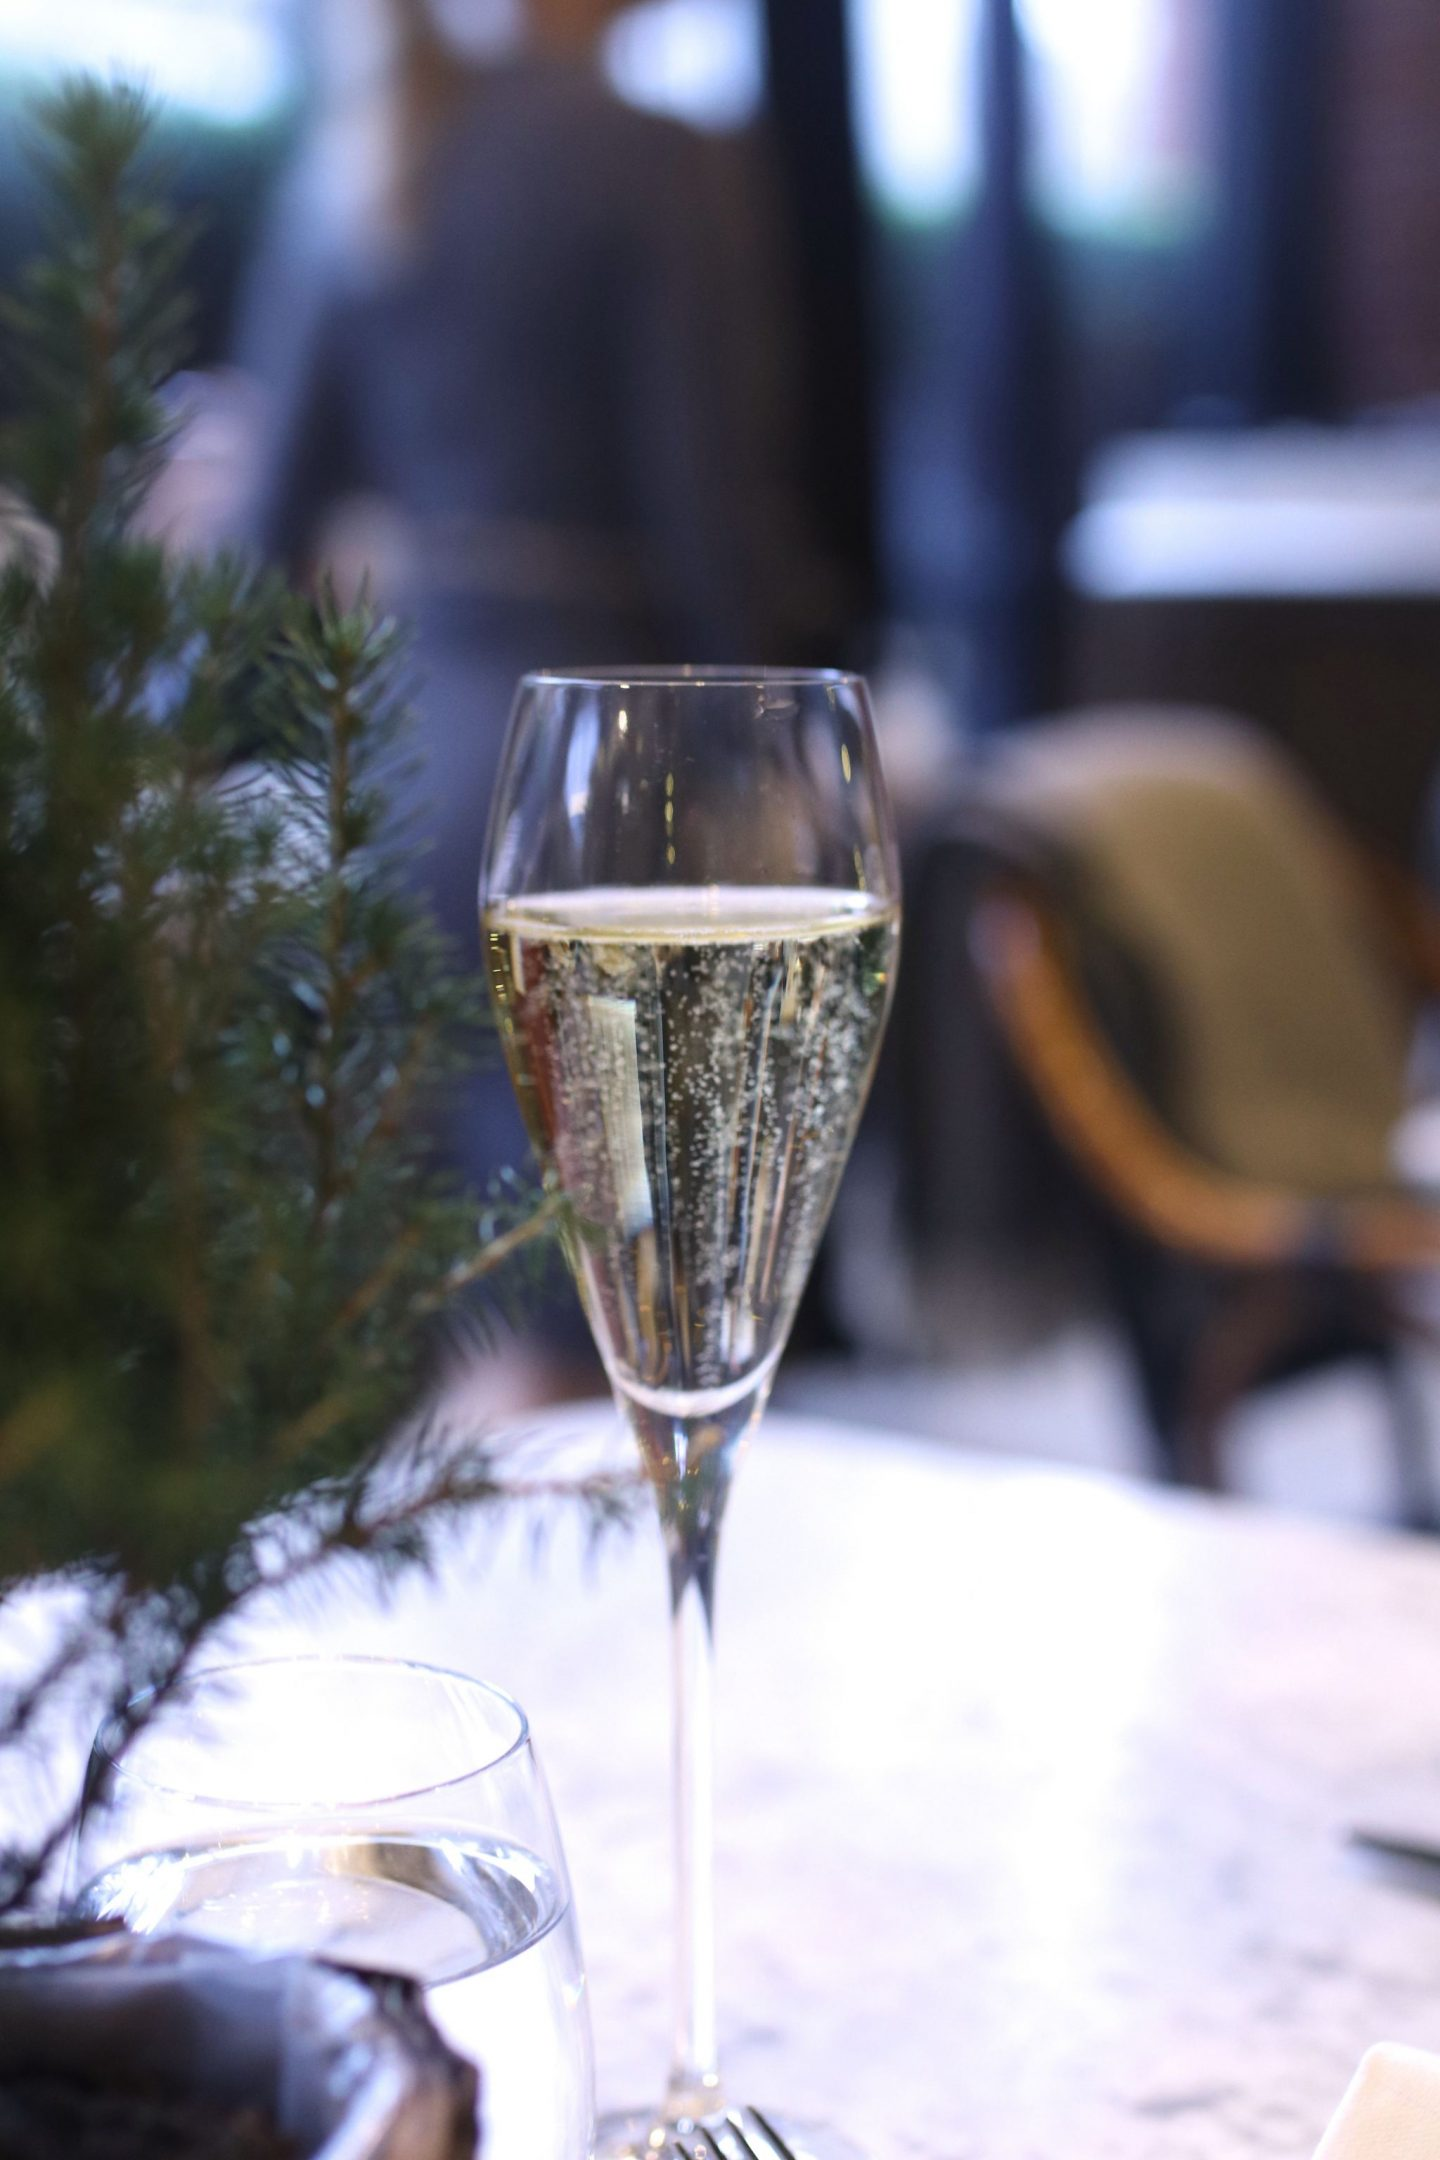 The Coral Room and Dalloway Terrace at The Bloomsbury Hotel London